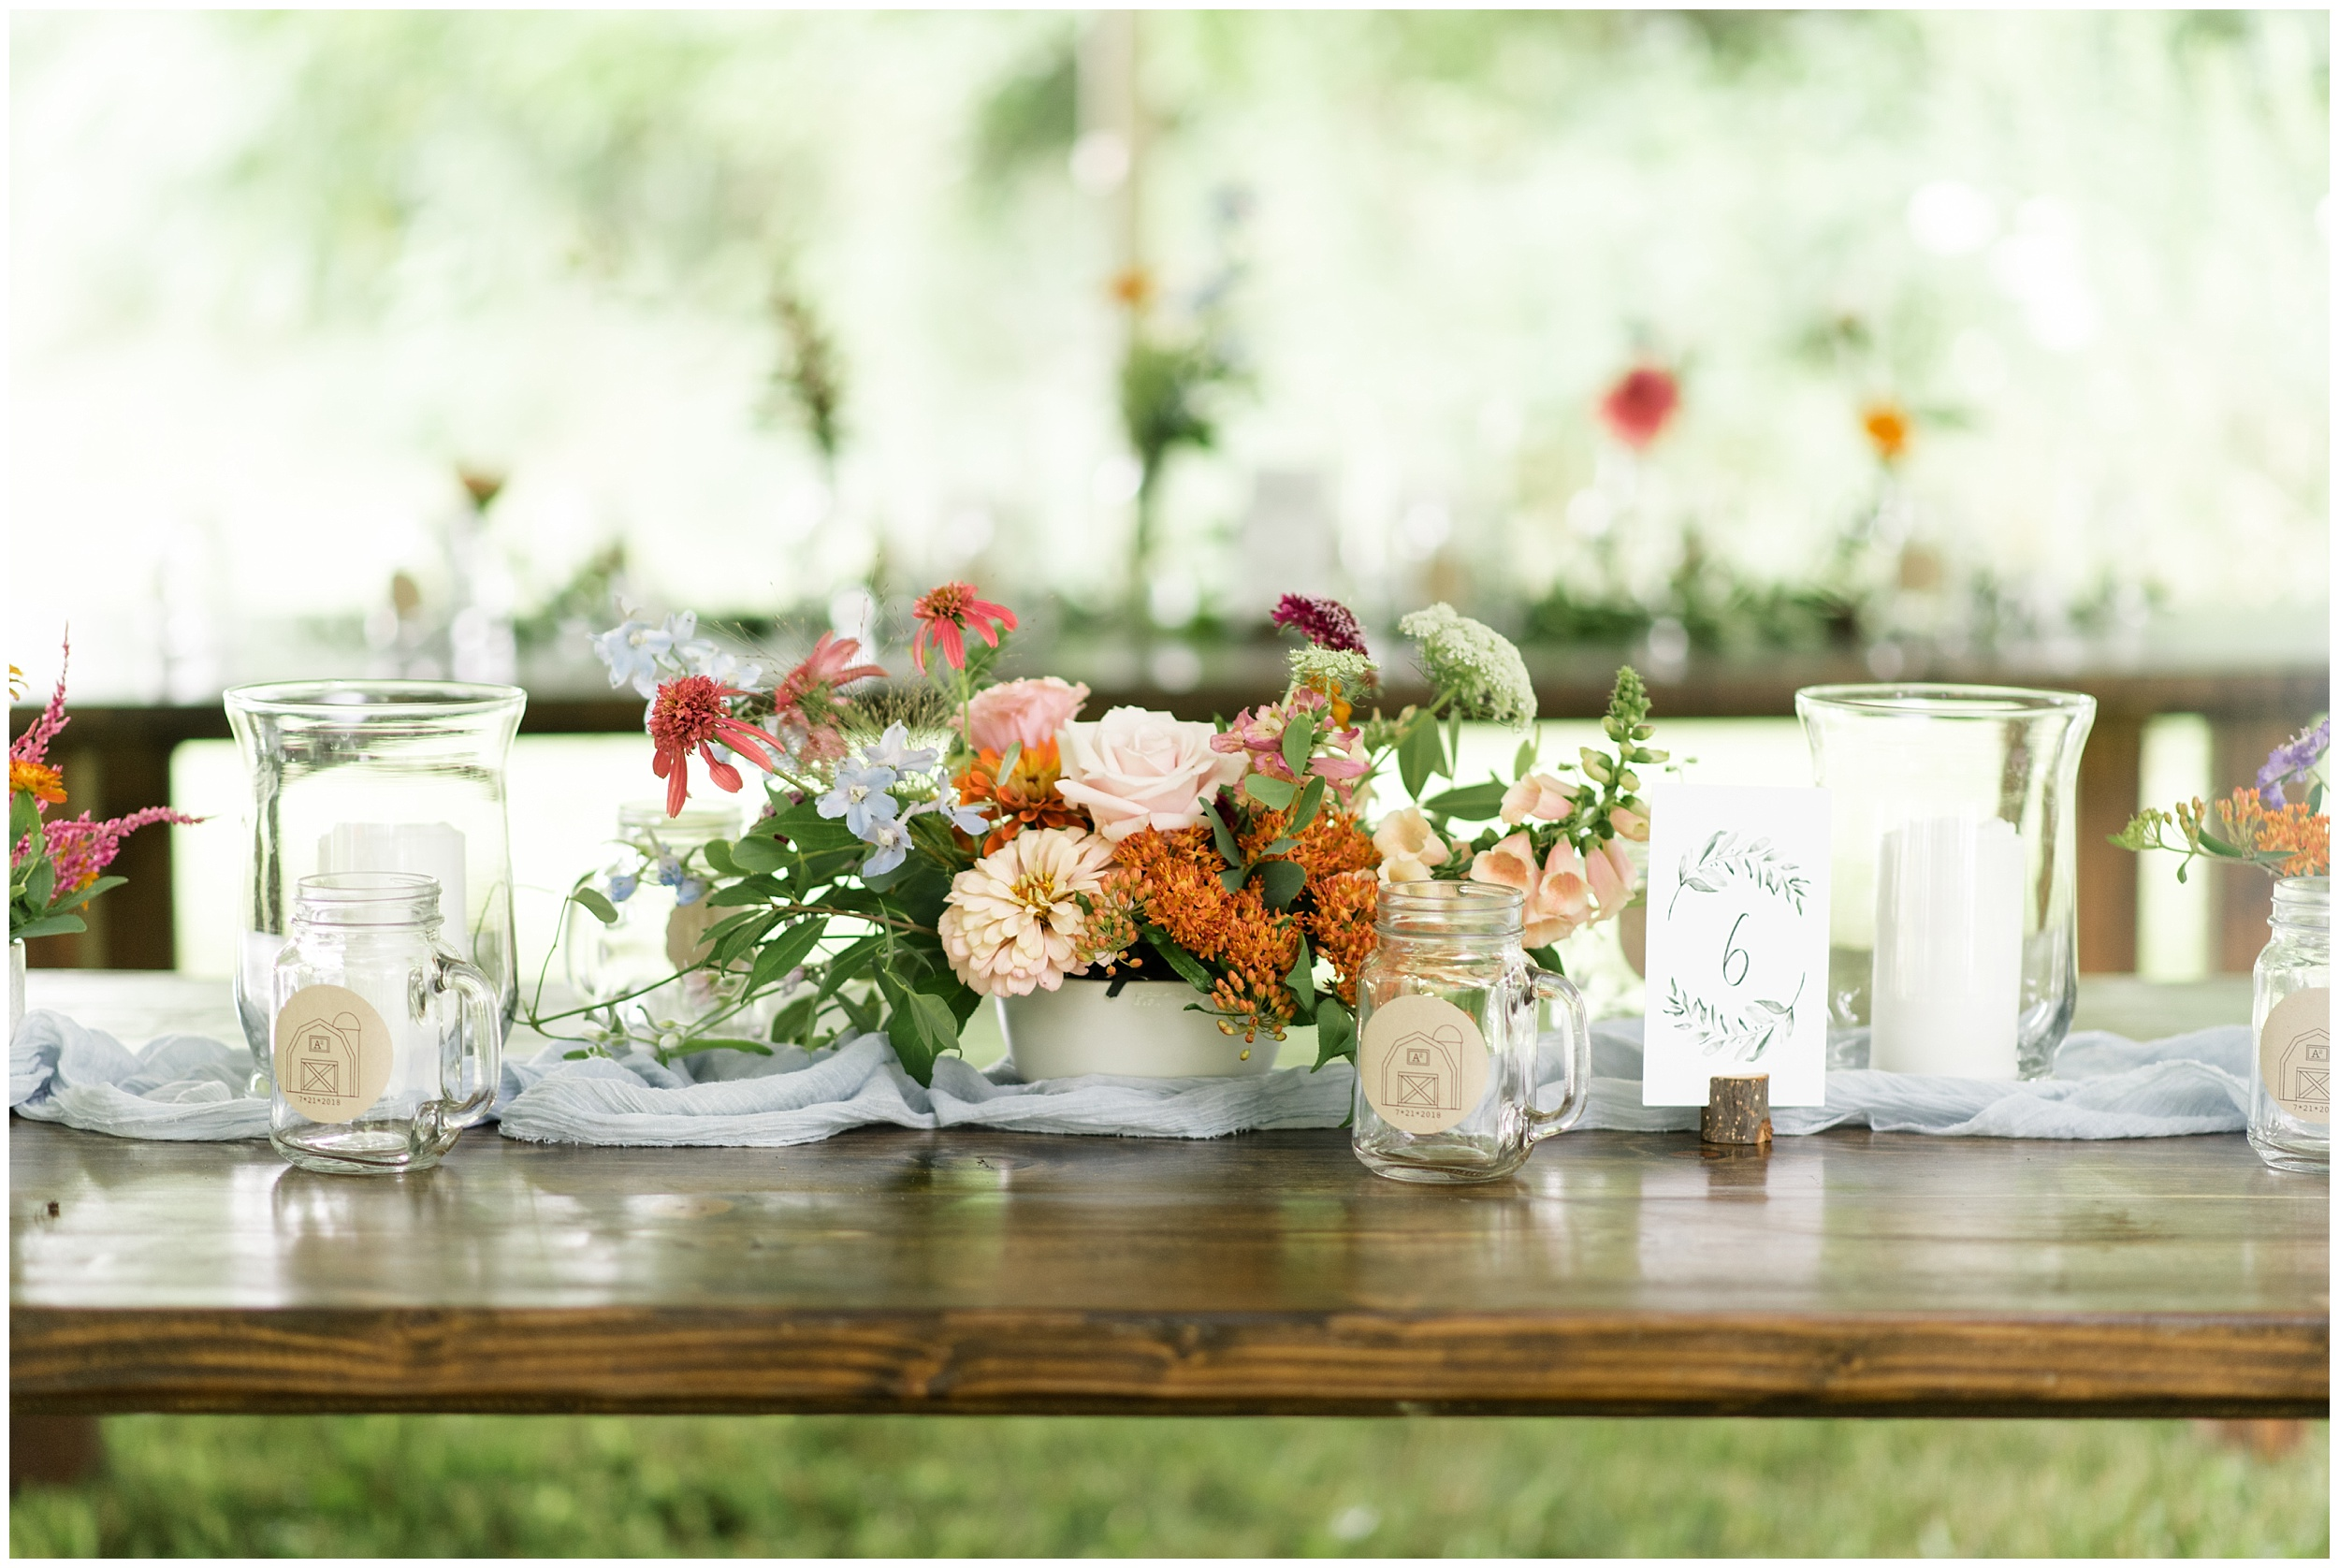 Whimsical-Ethereal-July-Kalamazoo-Wedding-Bright-Airy-Documentary-Milwaukee-Photographer_0020.jpg